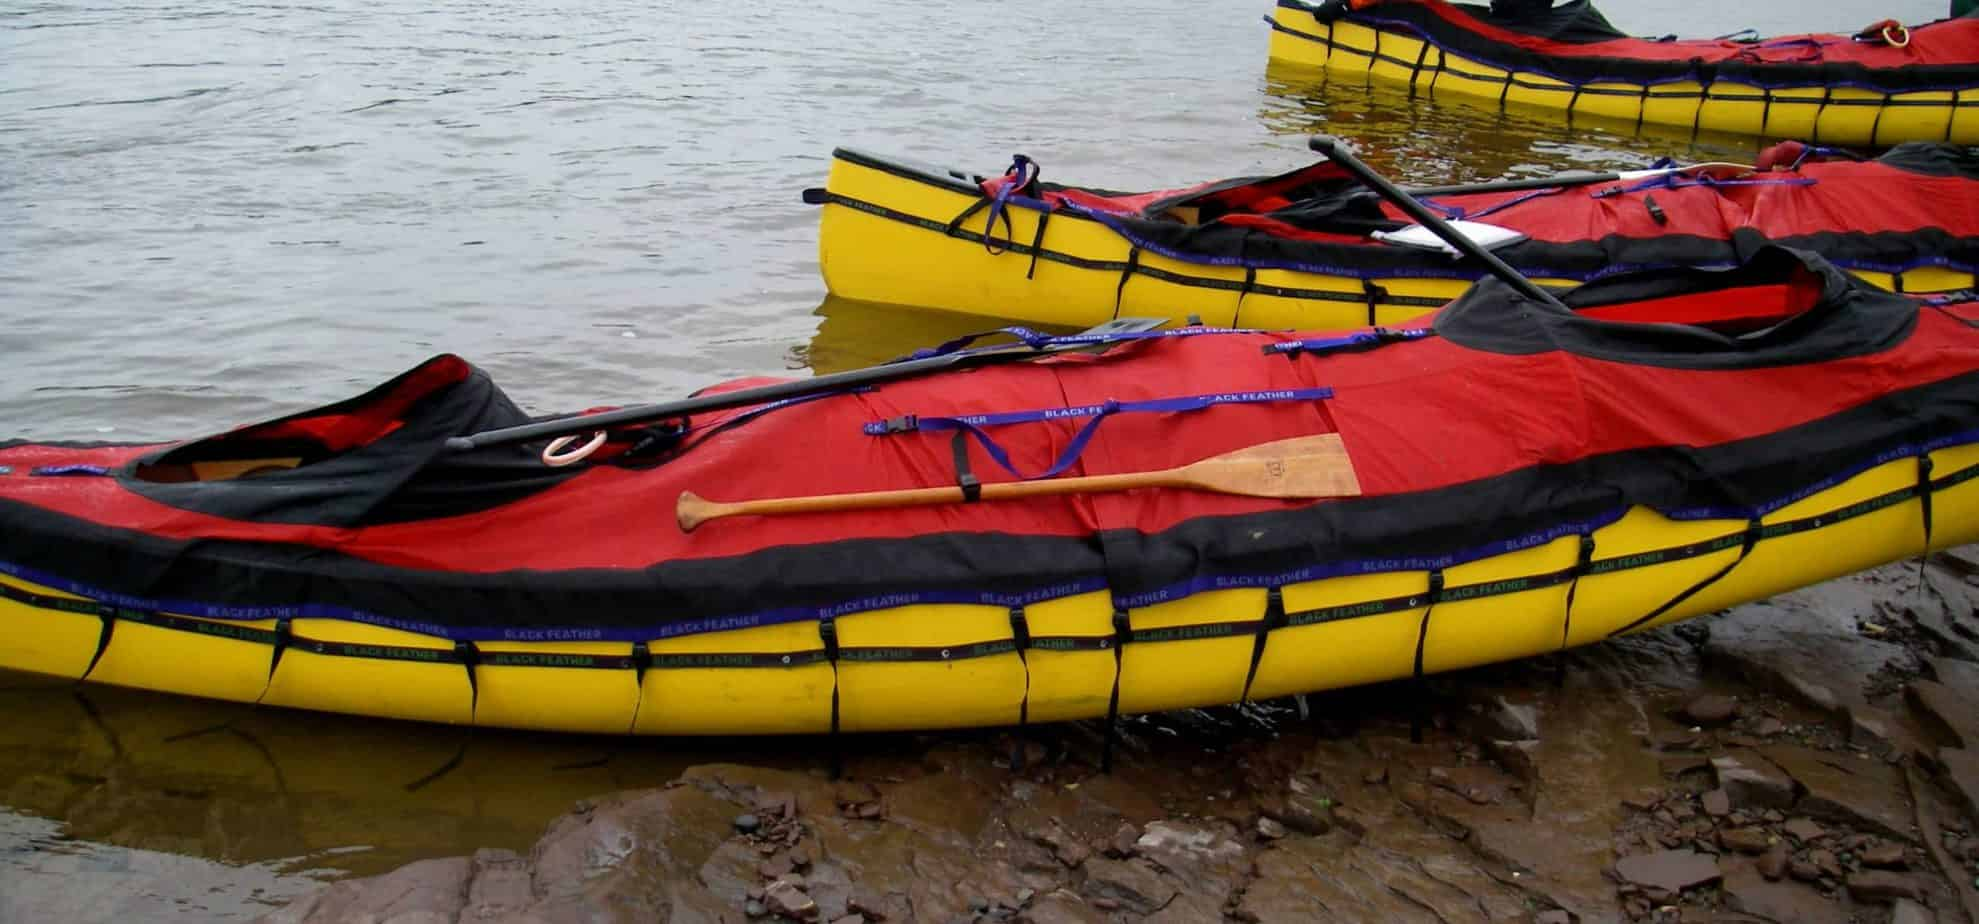 top kayak covers that are good quality for storage